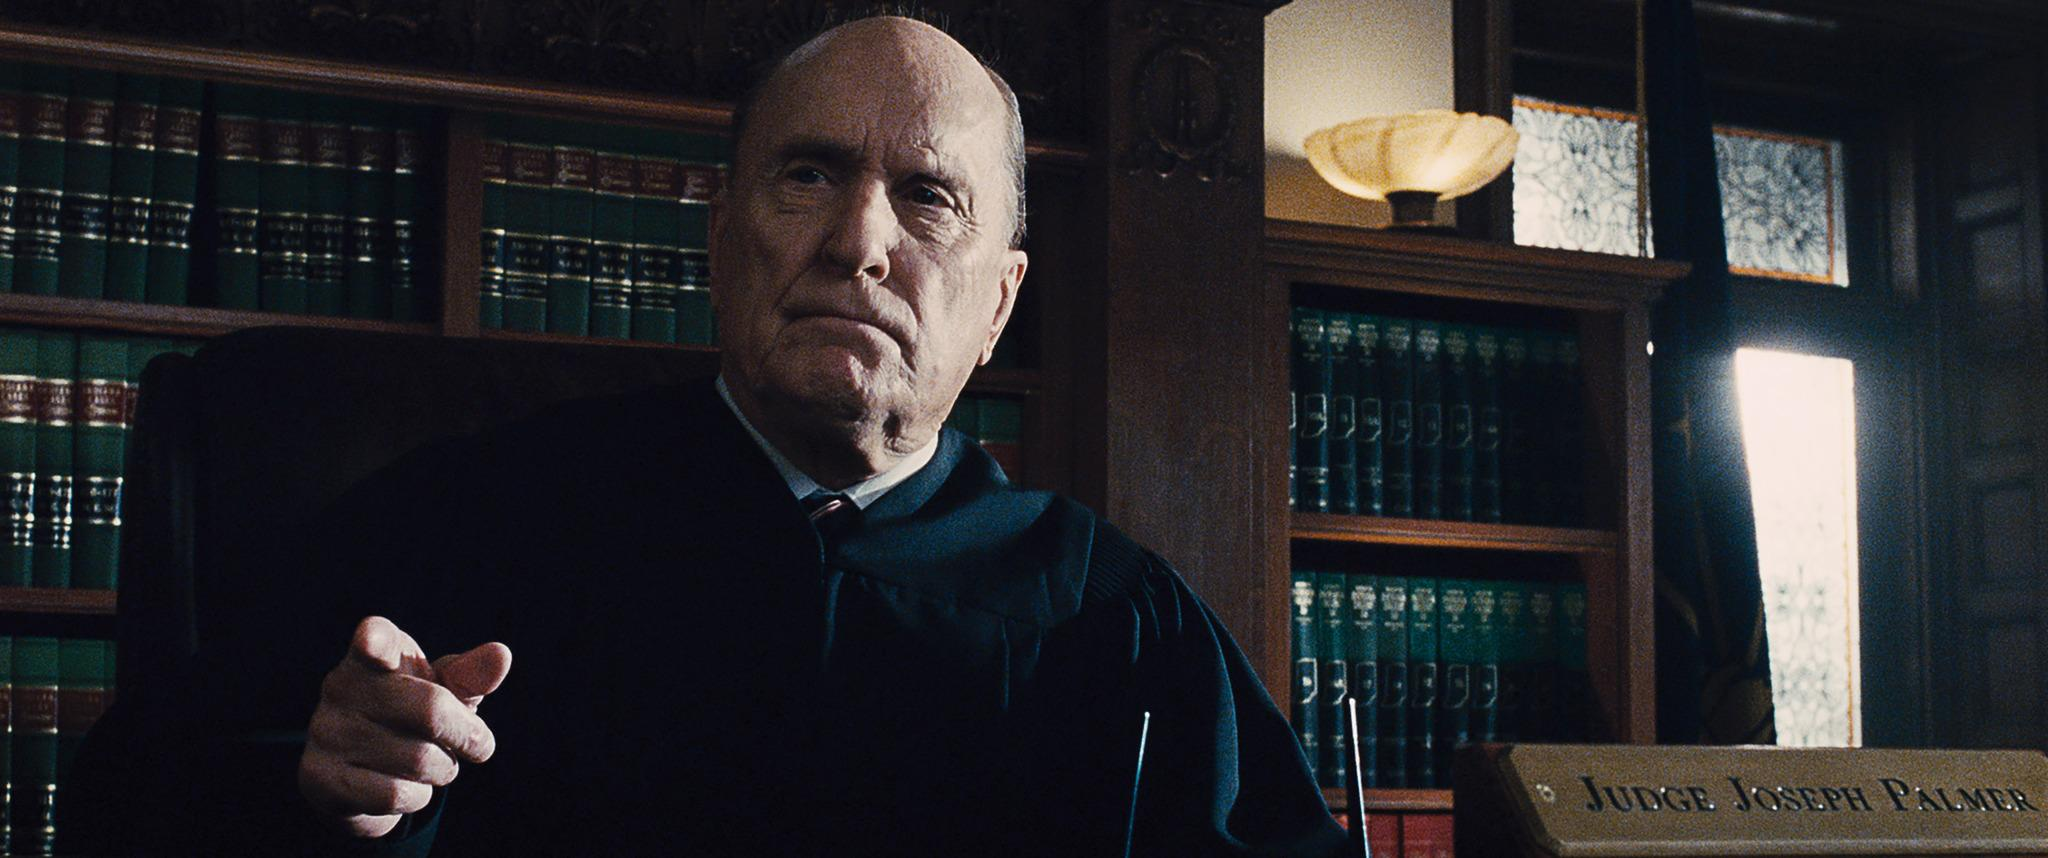 still-of-robert-duvall-in-the-judge-2014-large-picture